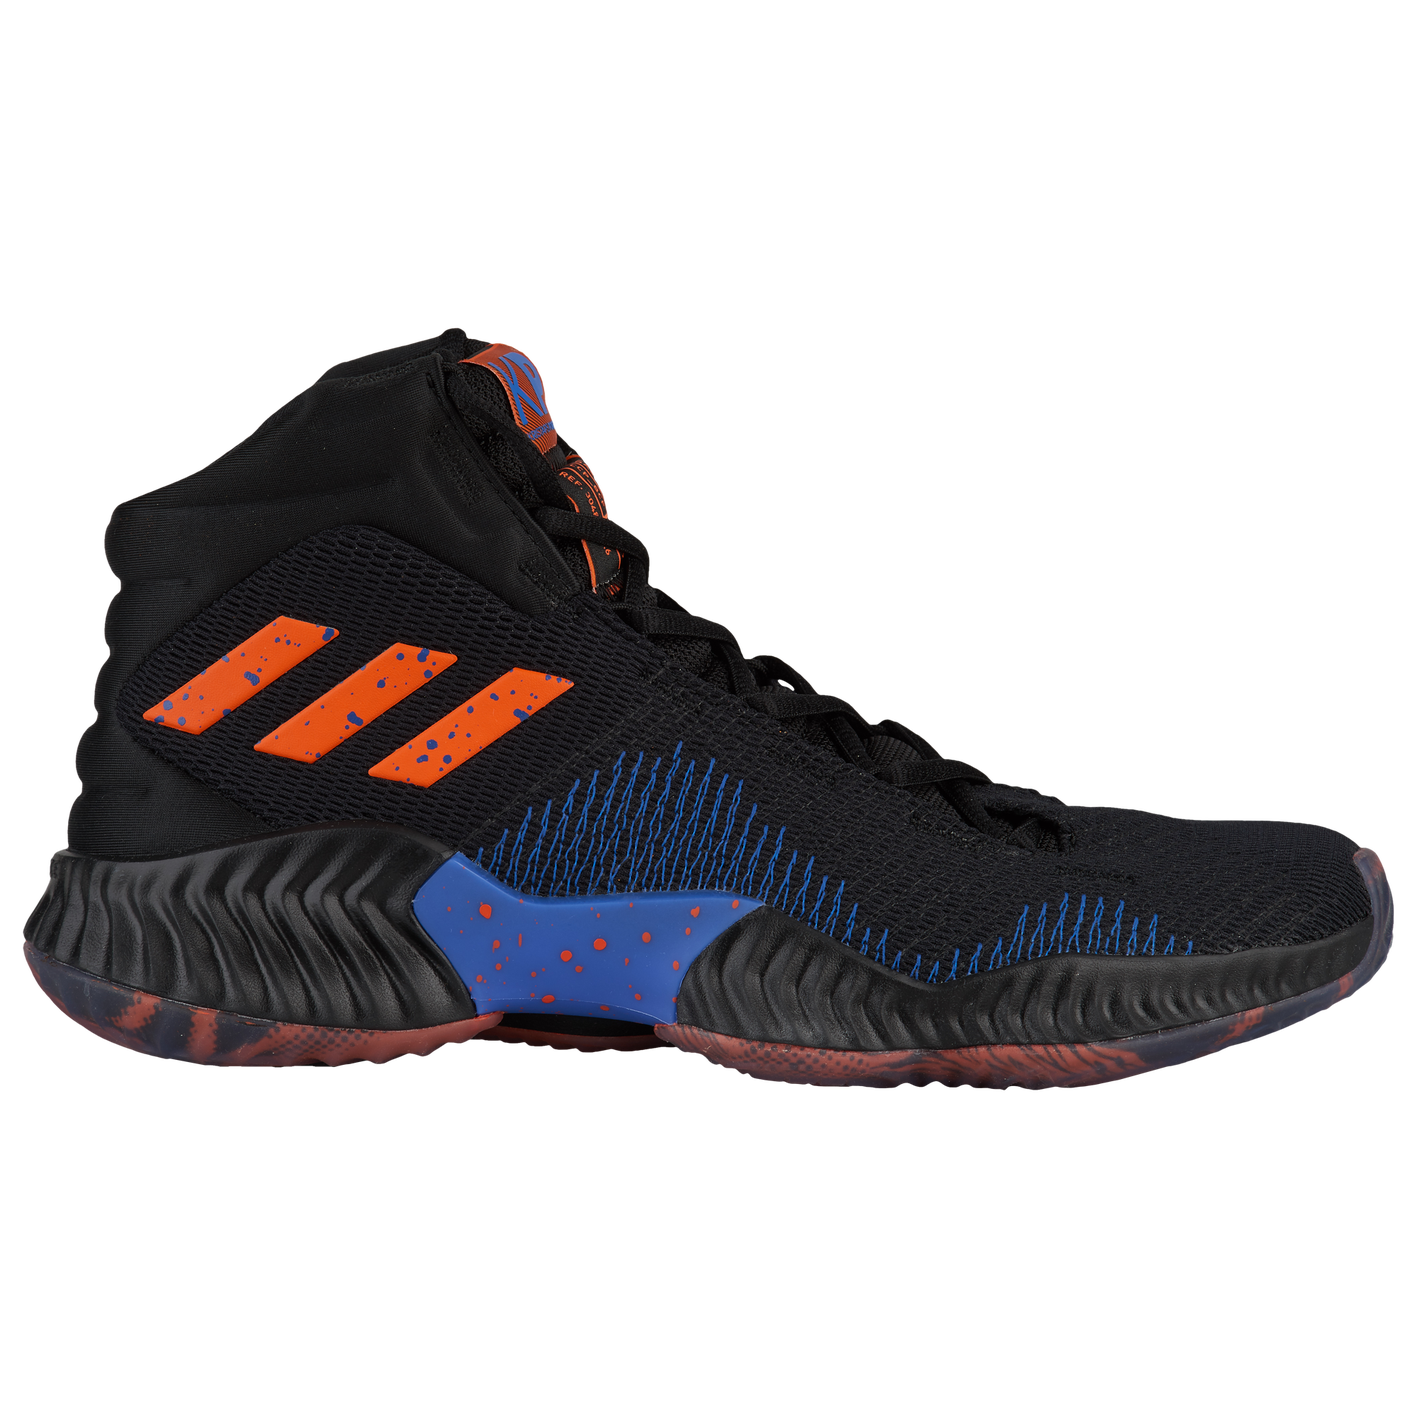 1ceb20a620815 adidas Pro Bounce Mid 2018 - Men s - Basketball - Shoes - Black ...